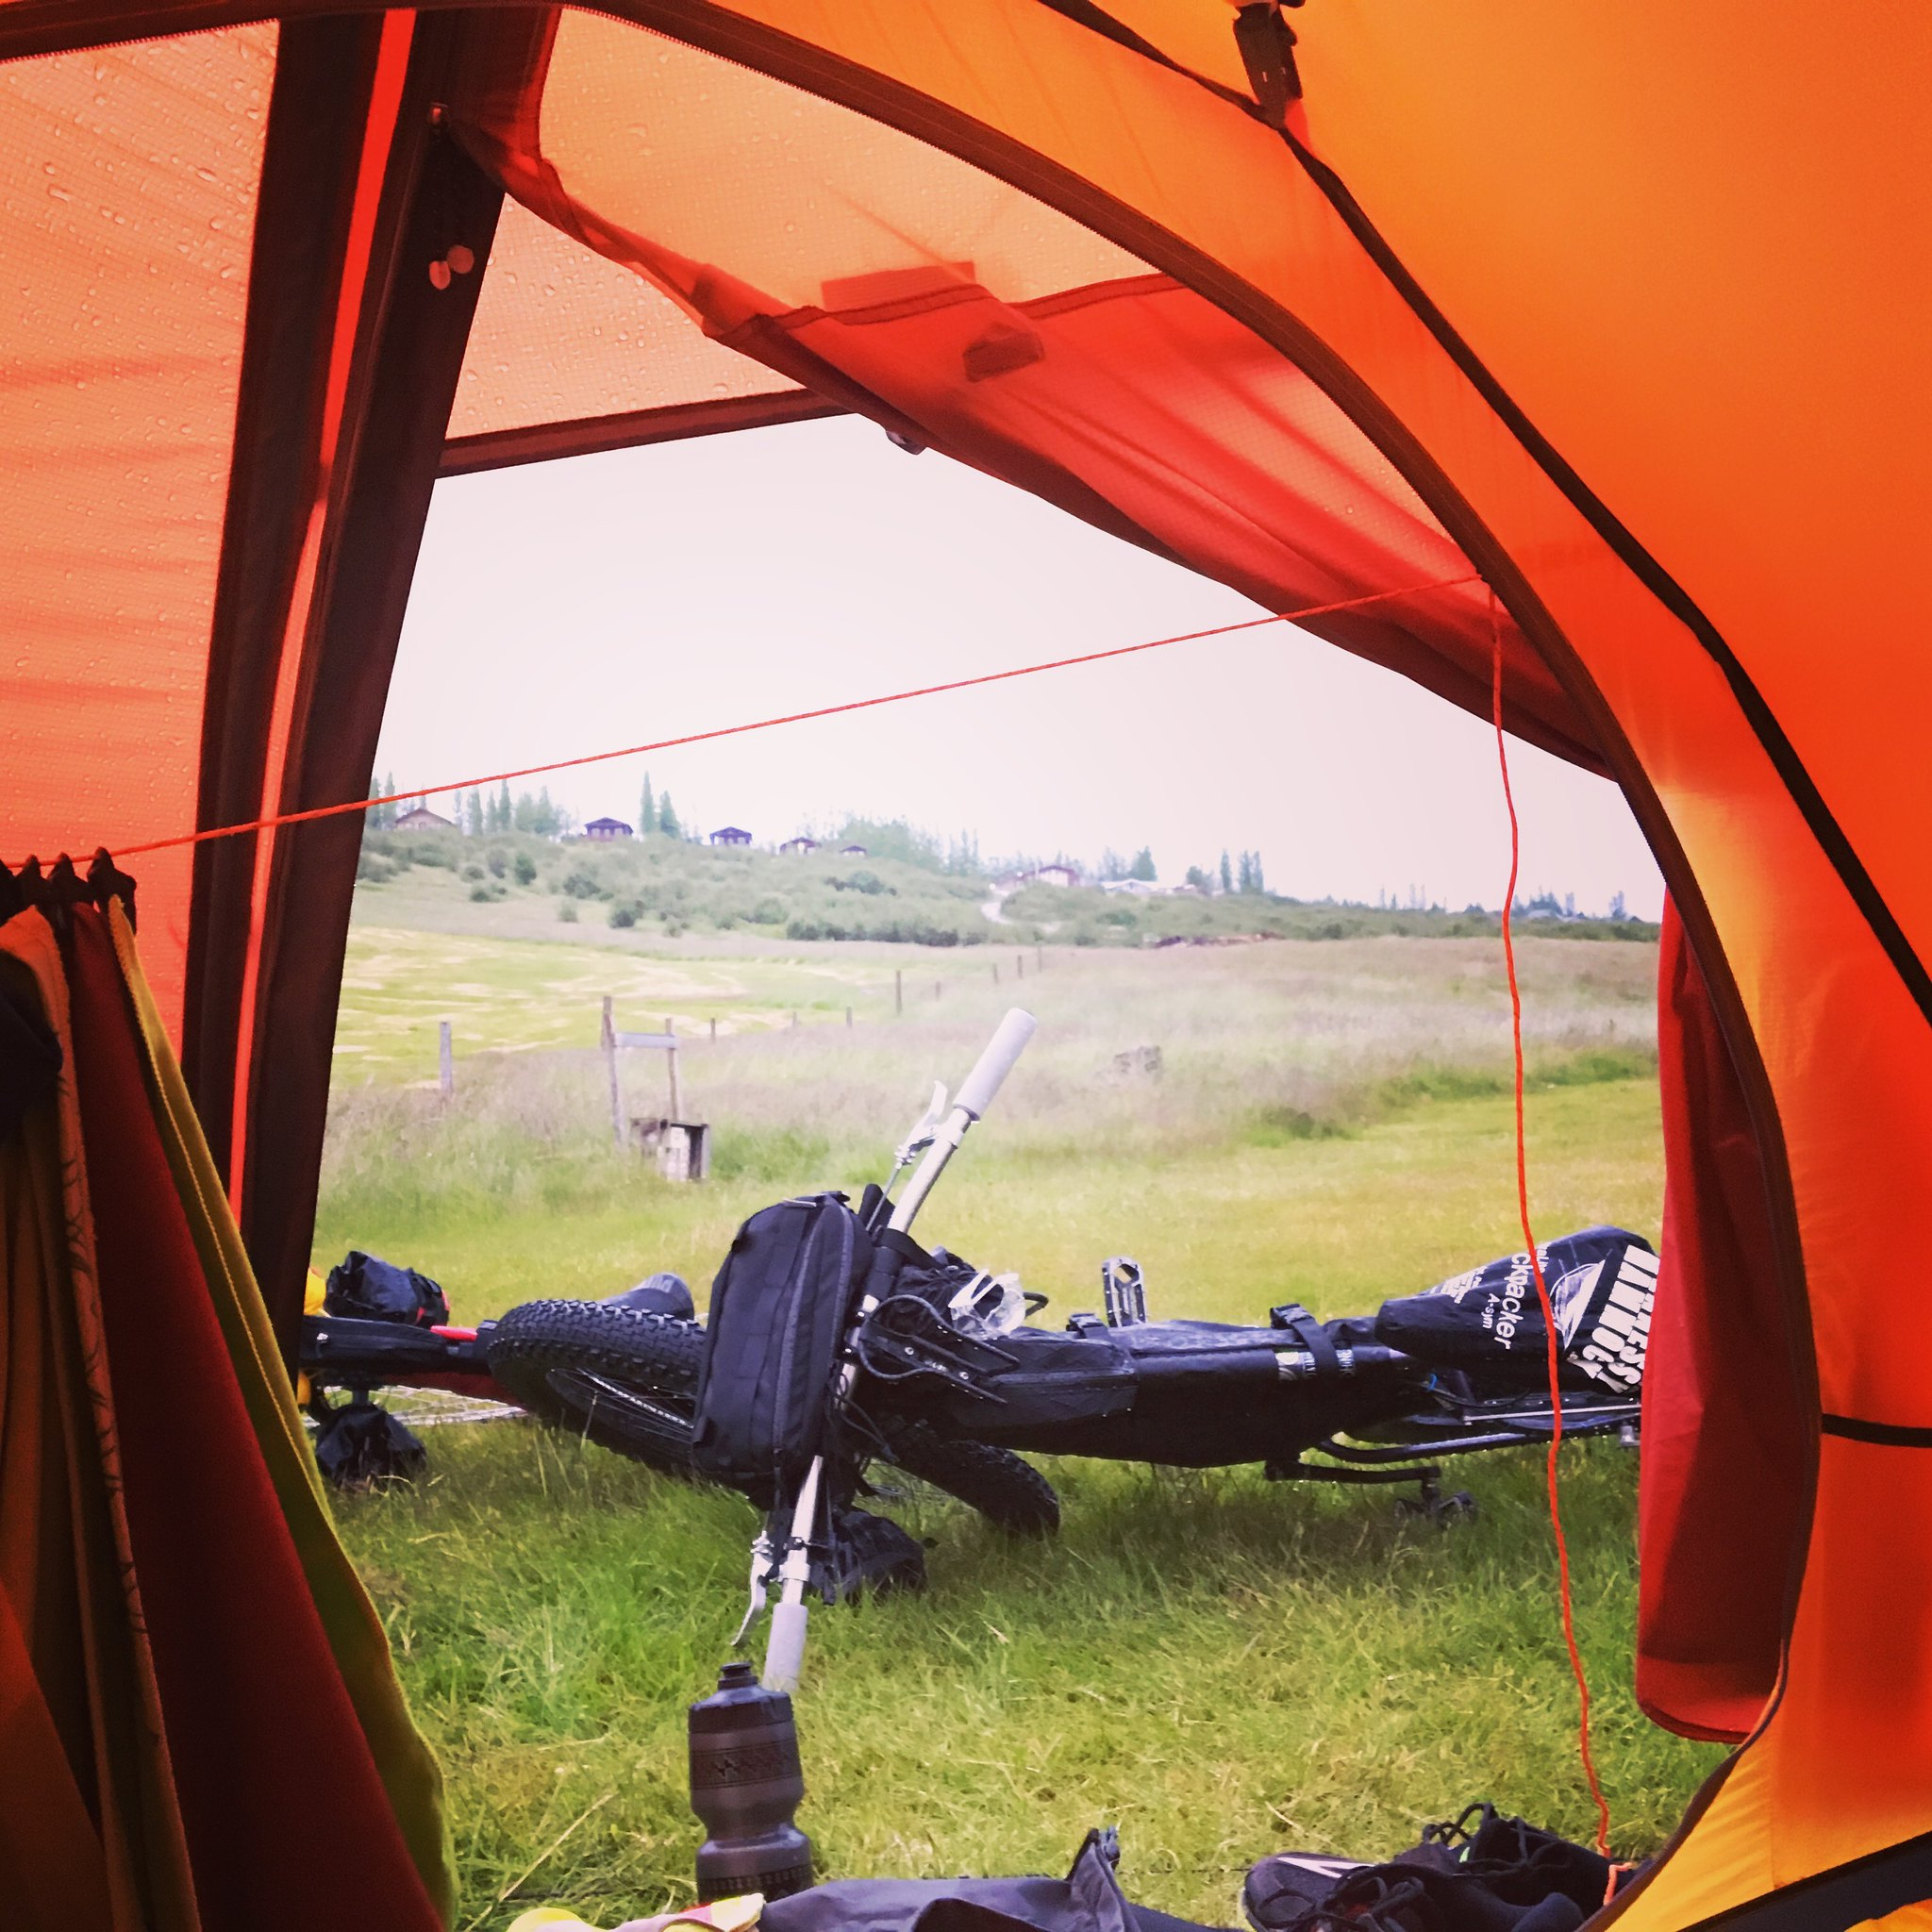 ... the tent was especially important when the weather went south. During our trip we had a couple of 24-hour periods with nothing but pouring rain. On the ... & 6-Month Review: The Exped Orion II 4-Season Tent u2013 Max The Cyclist